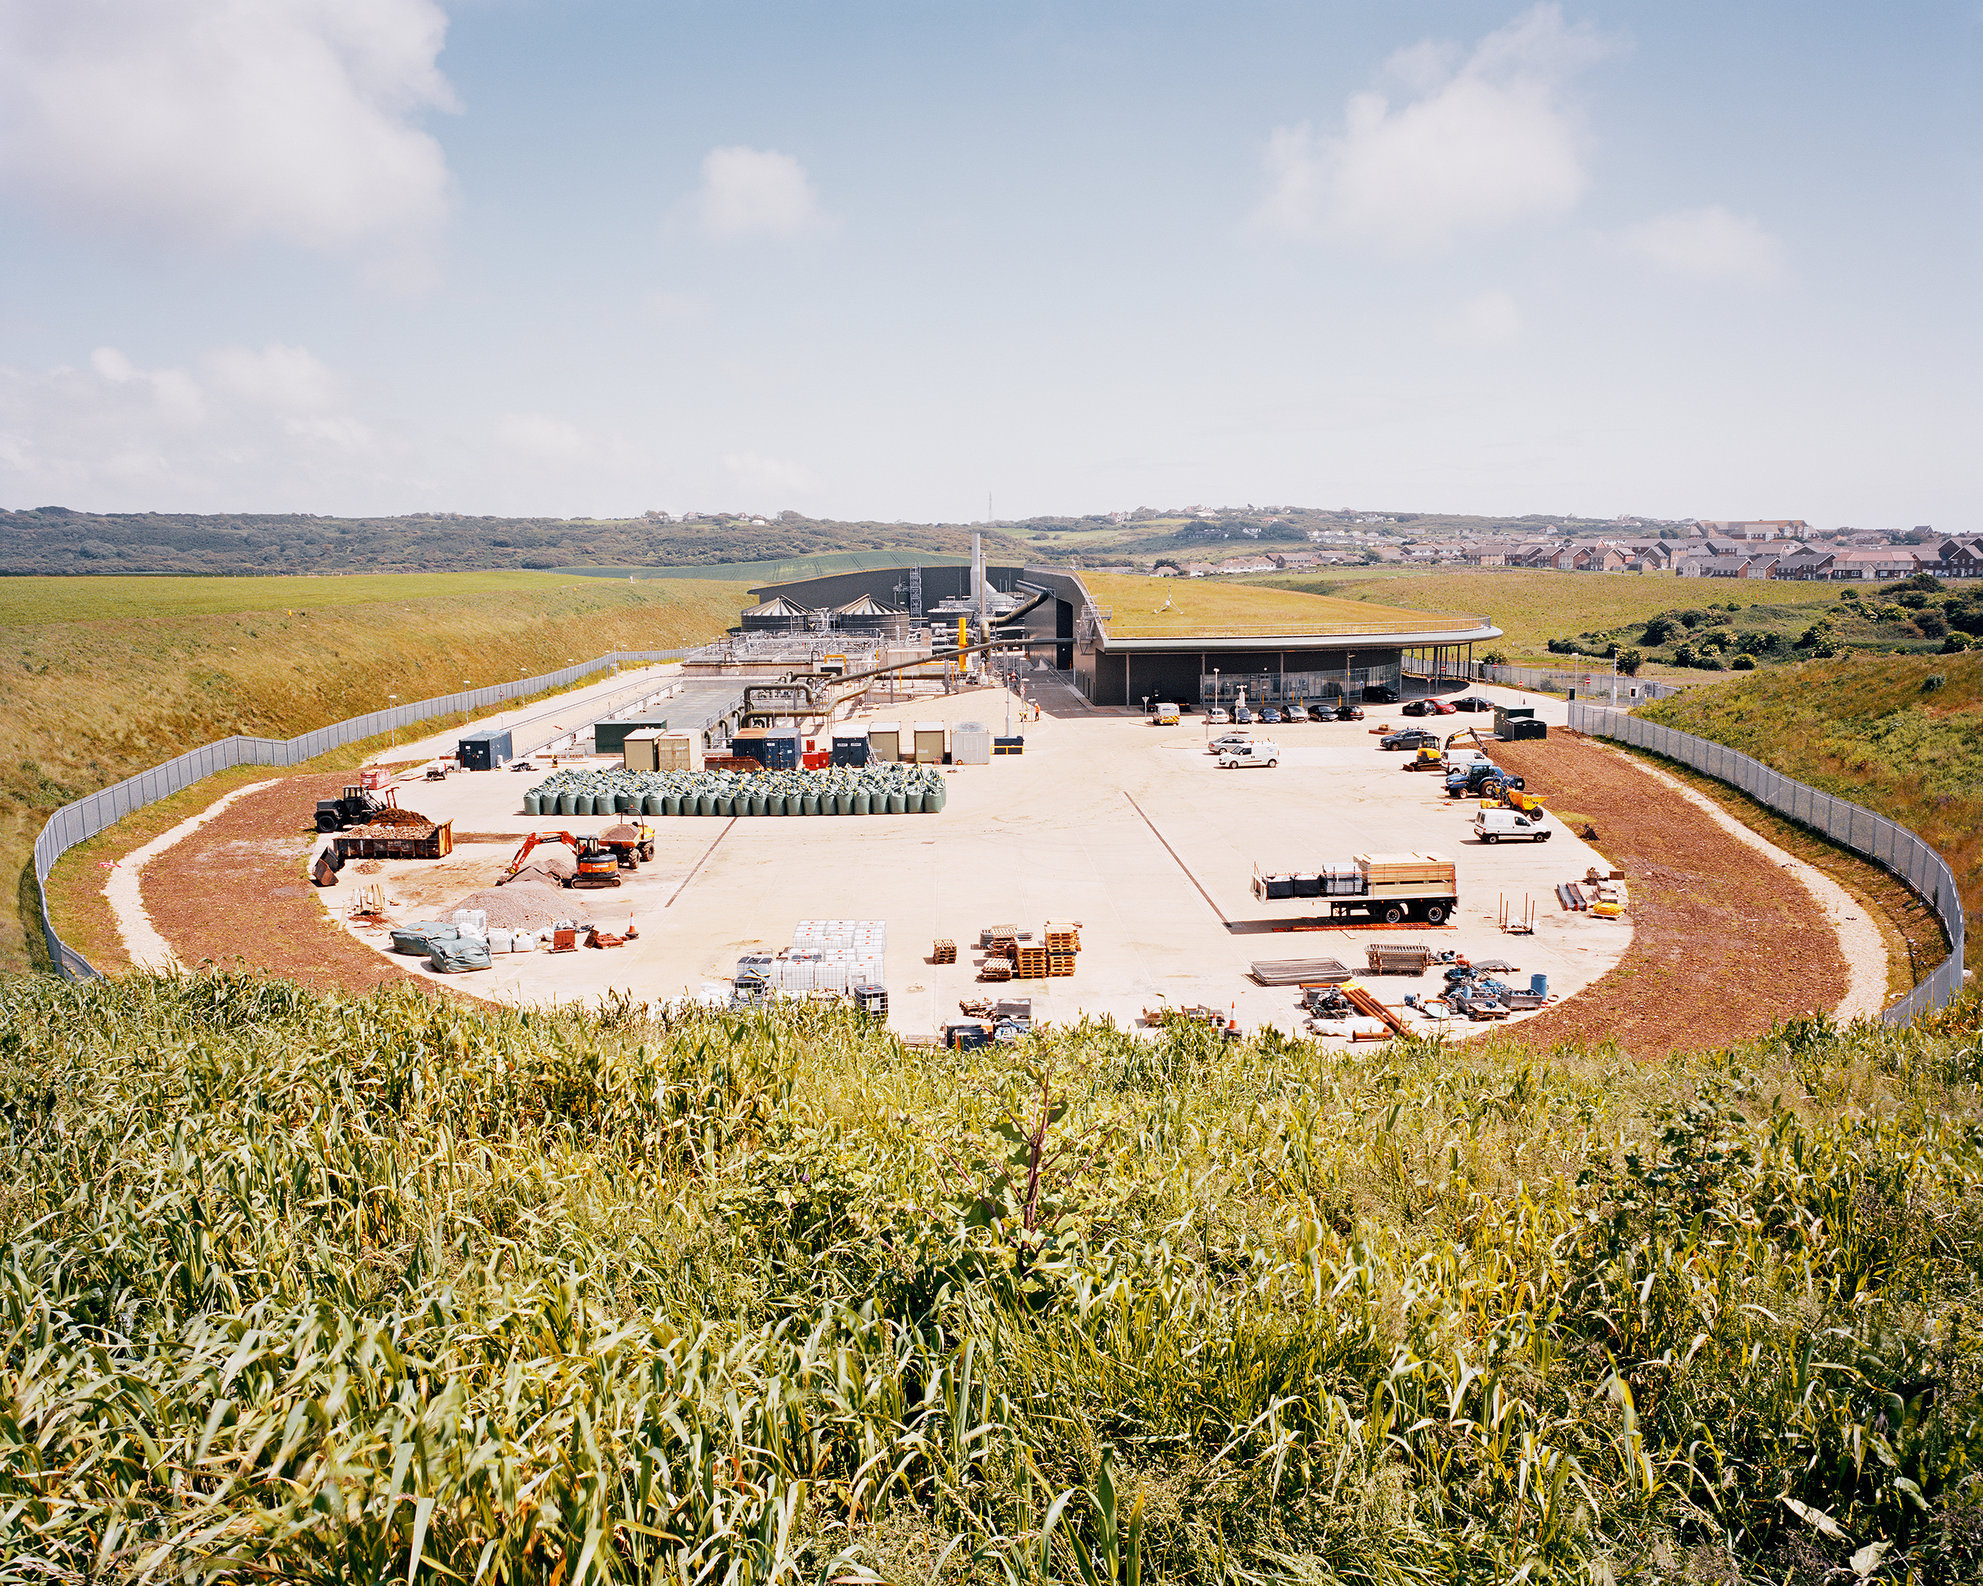 Peacehaven Wastewater Treatment Works